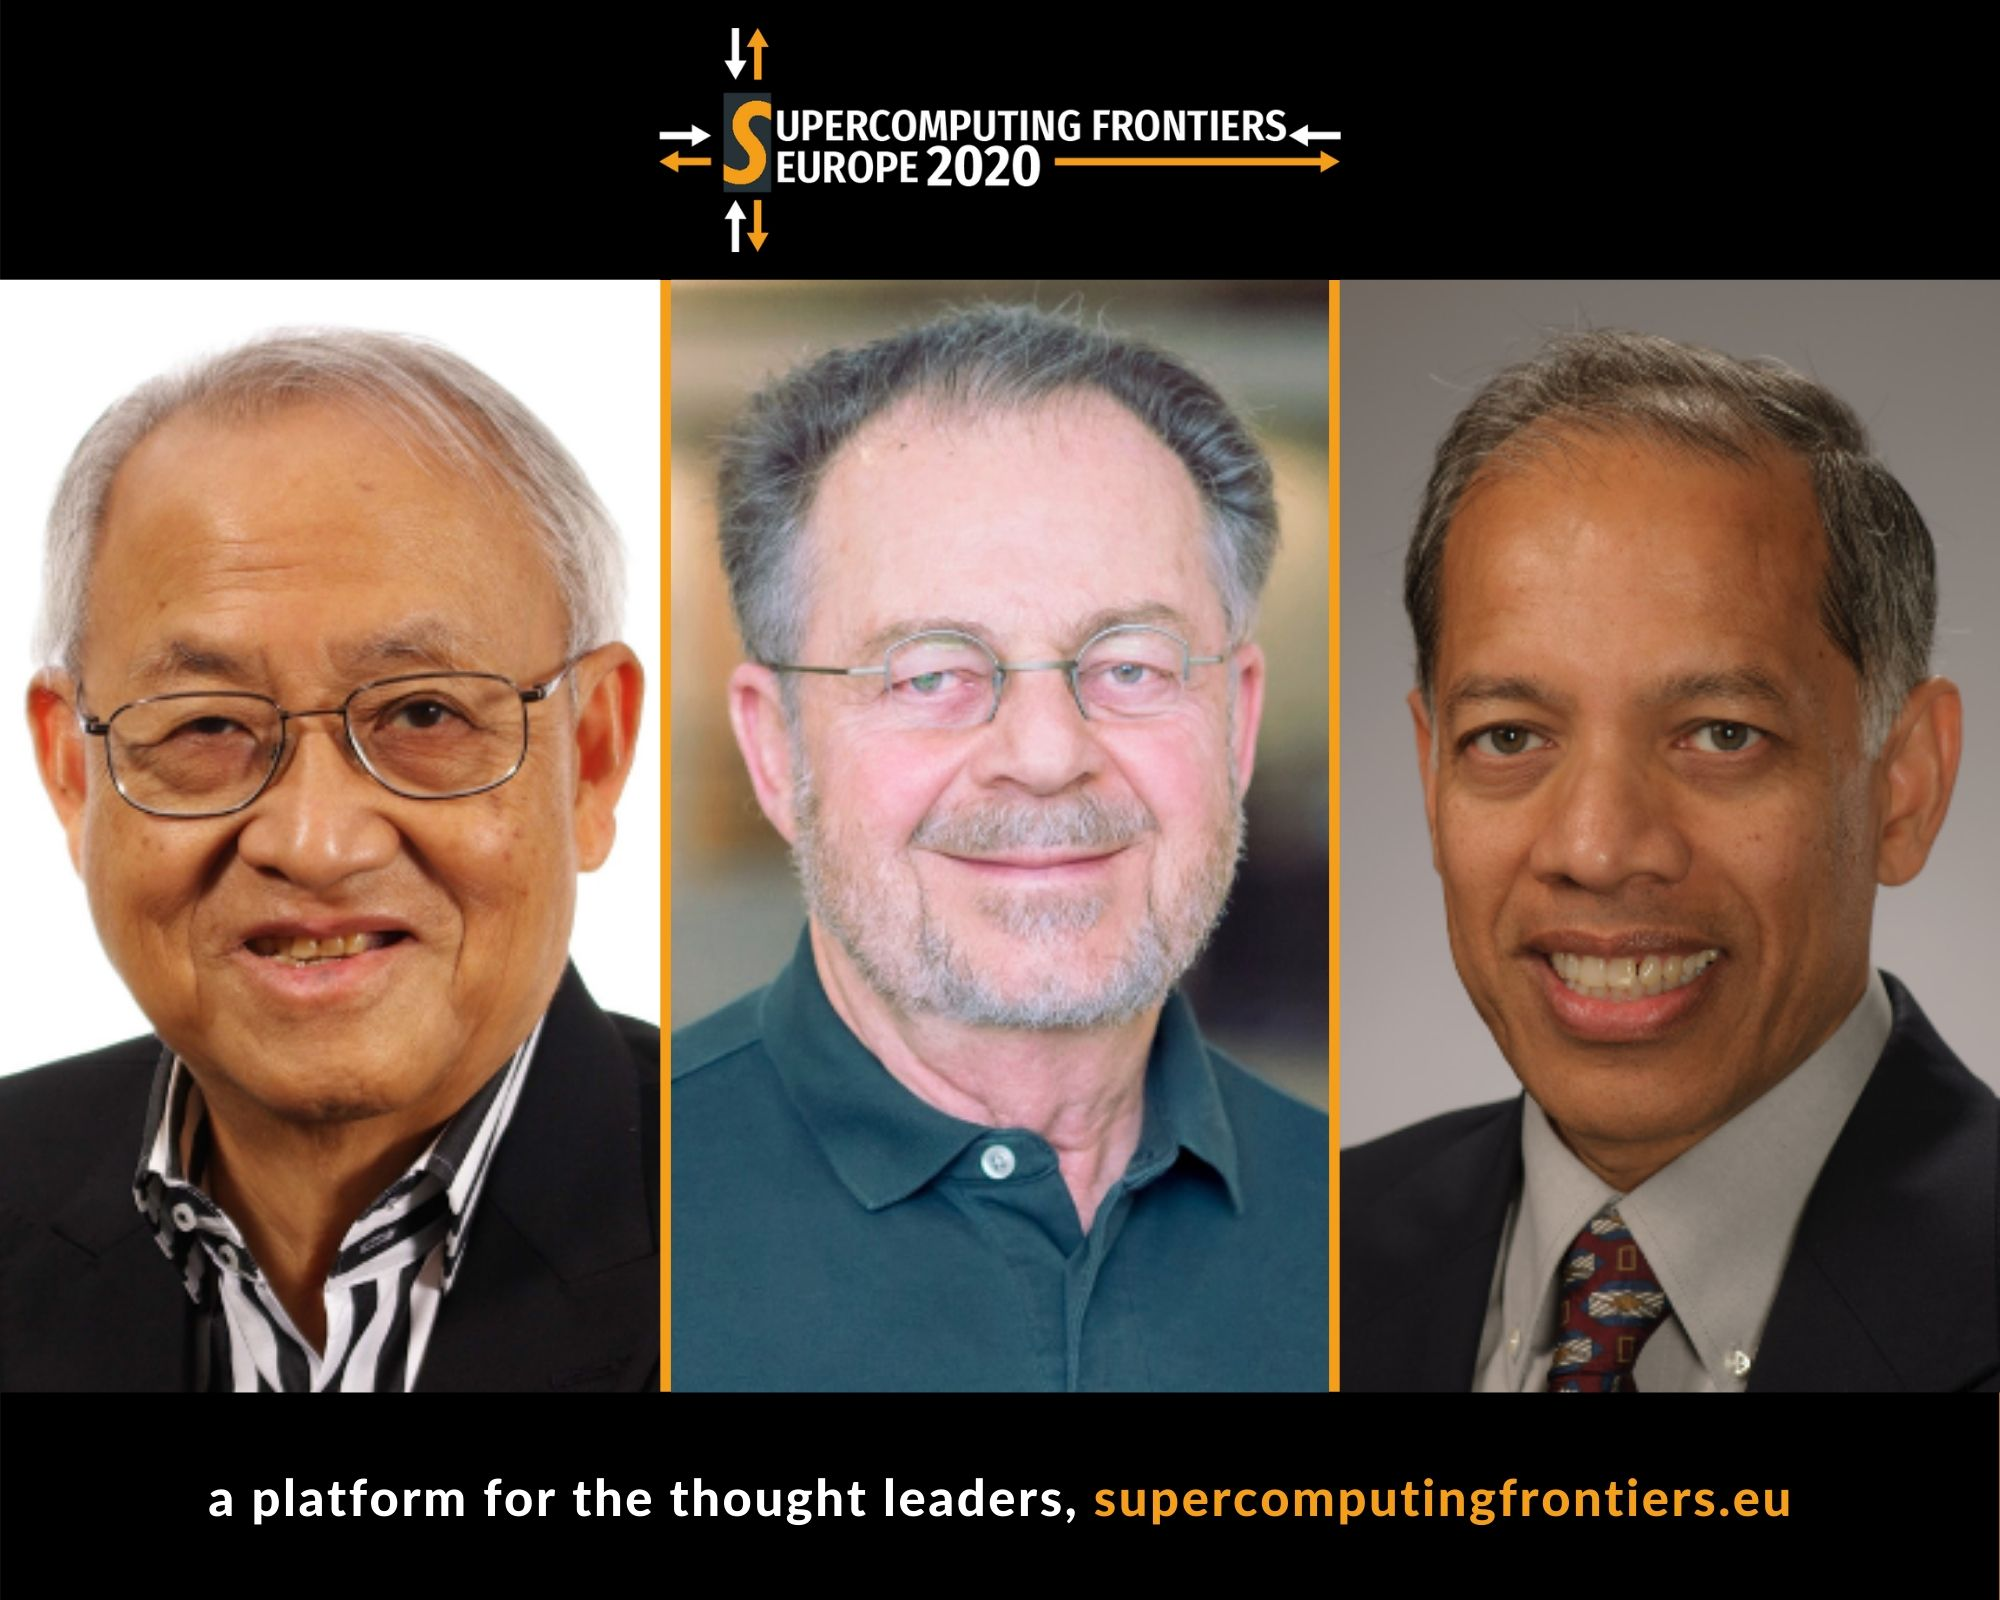 Keynotes of the Supercomputing Frontiers Europe 2019